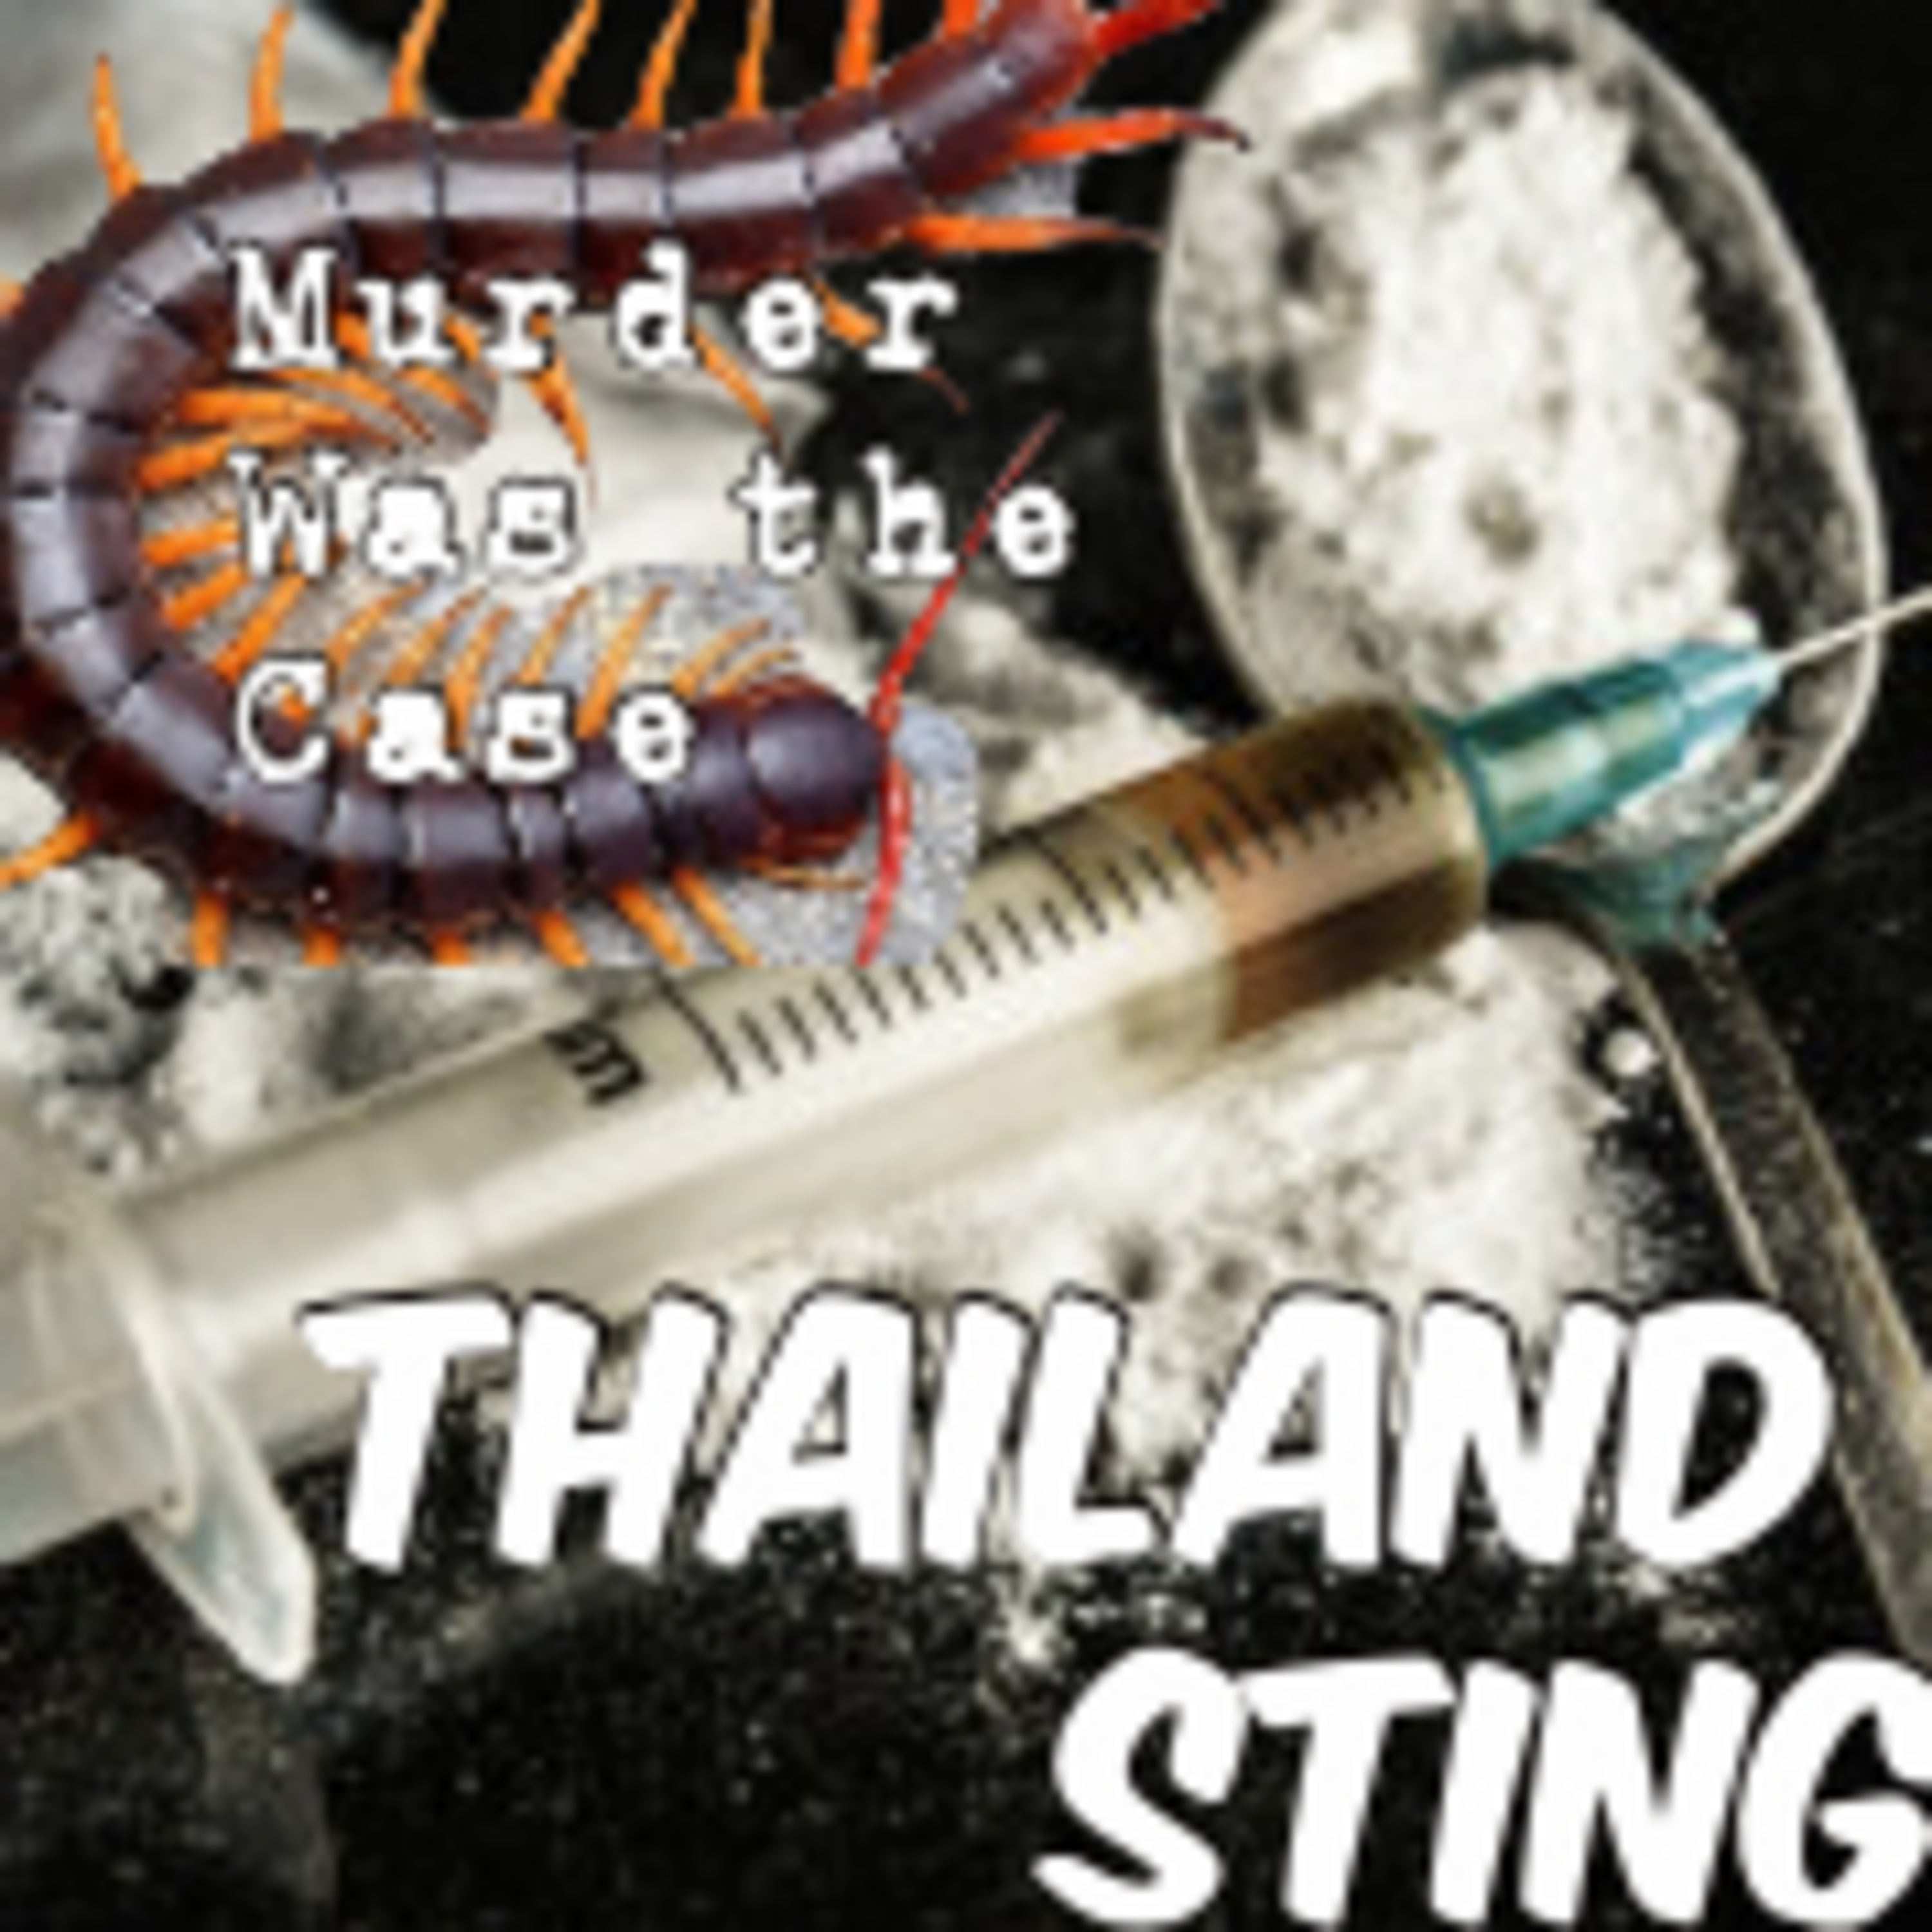 #157. Thailand Sting, Part 8: Narcotica (Dive Bar) w/ Alain Olivier